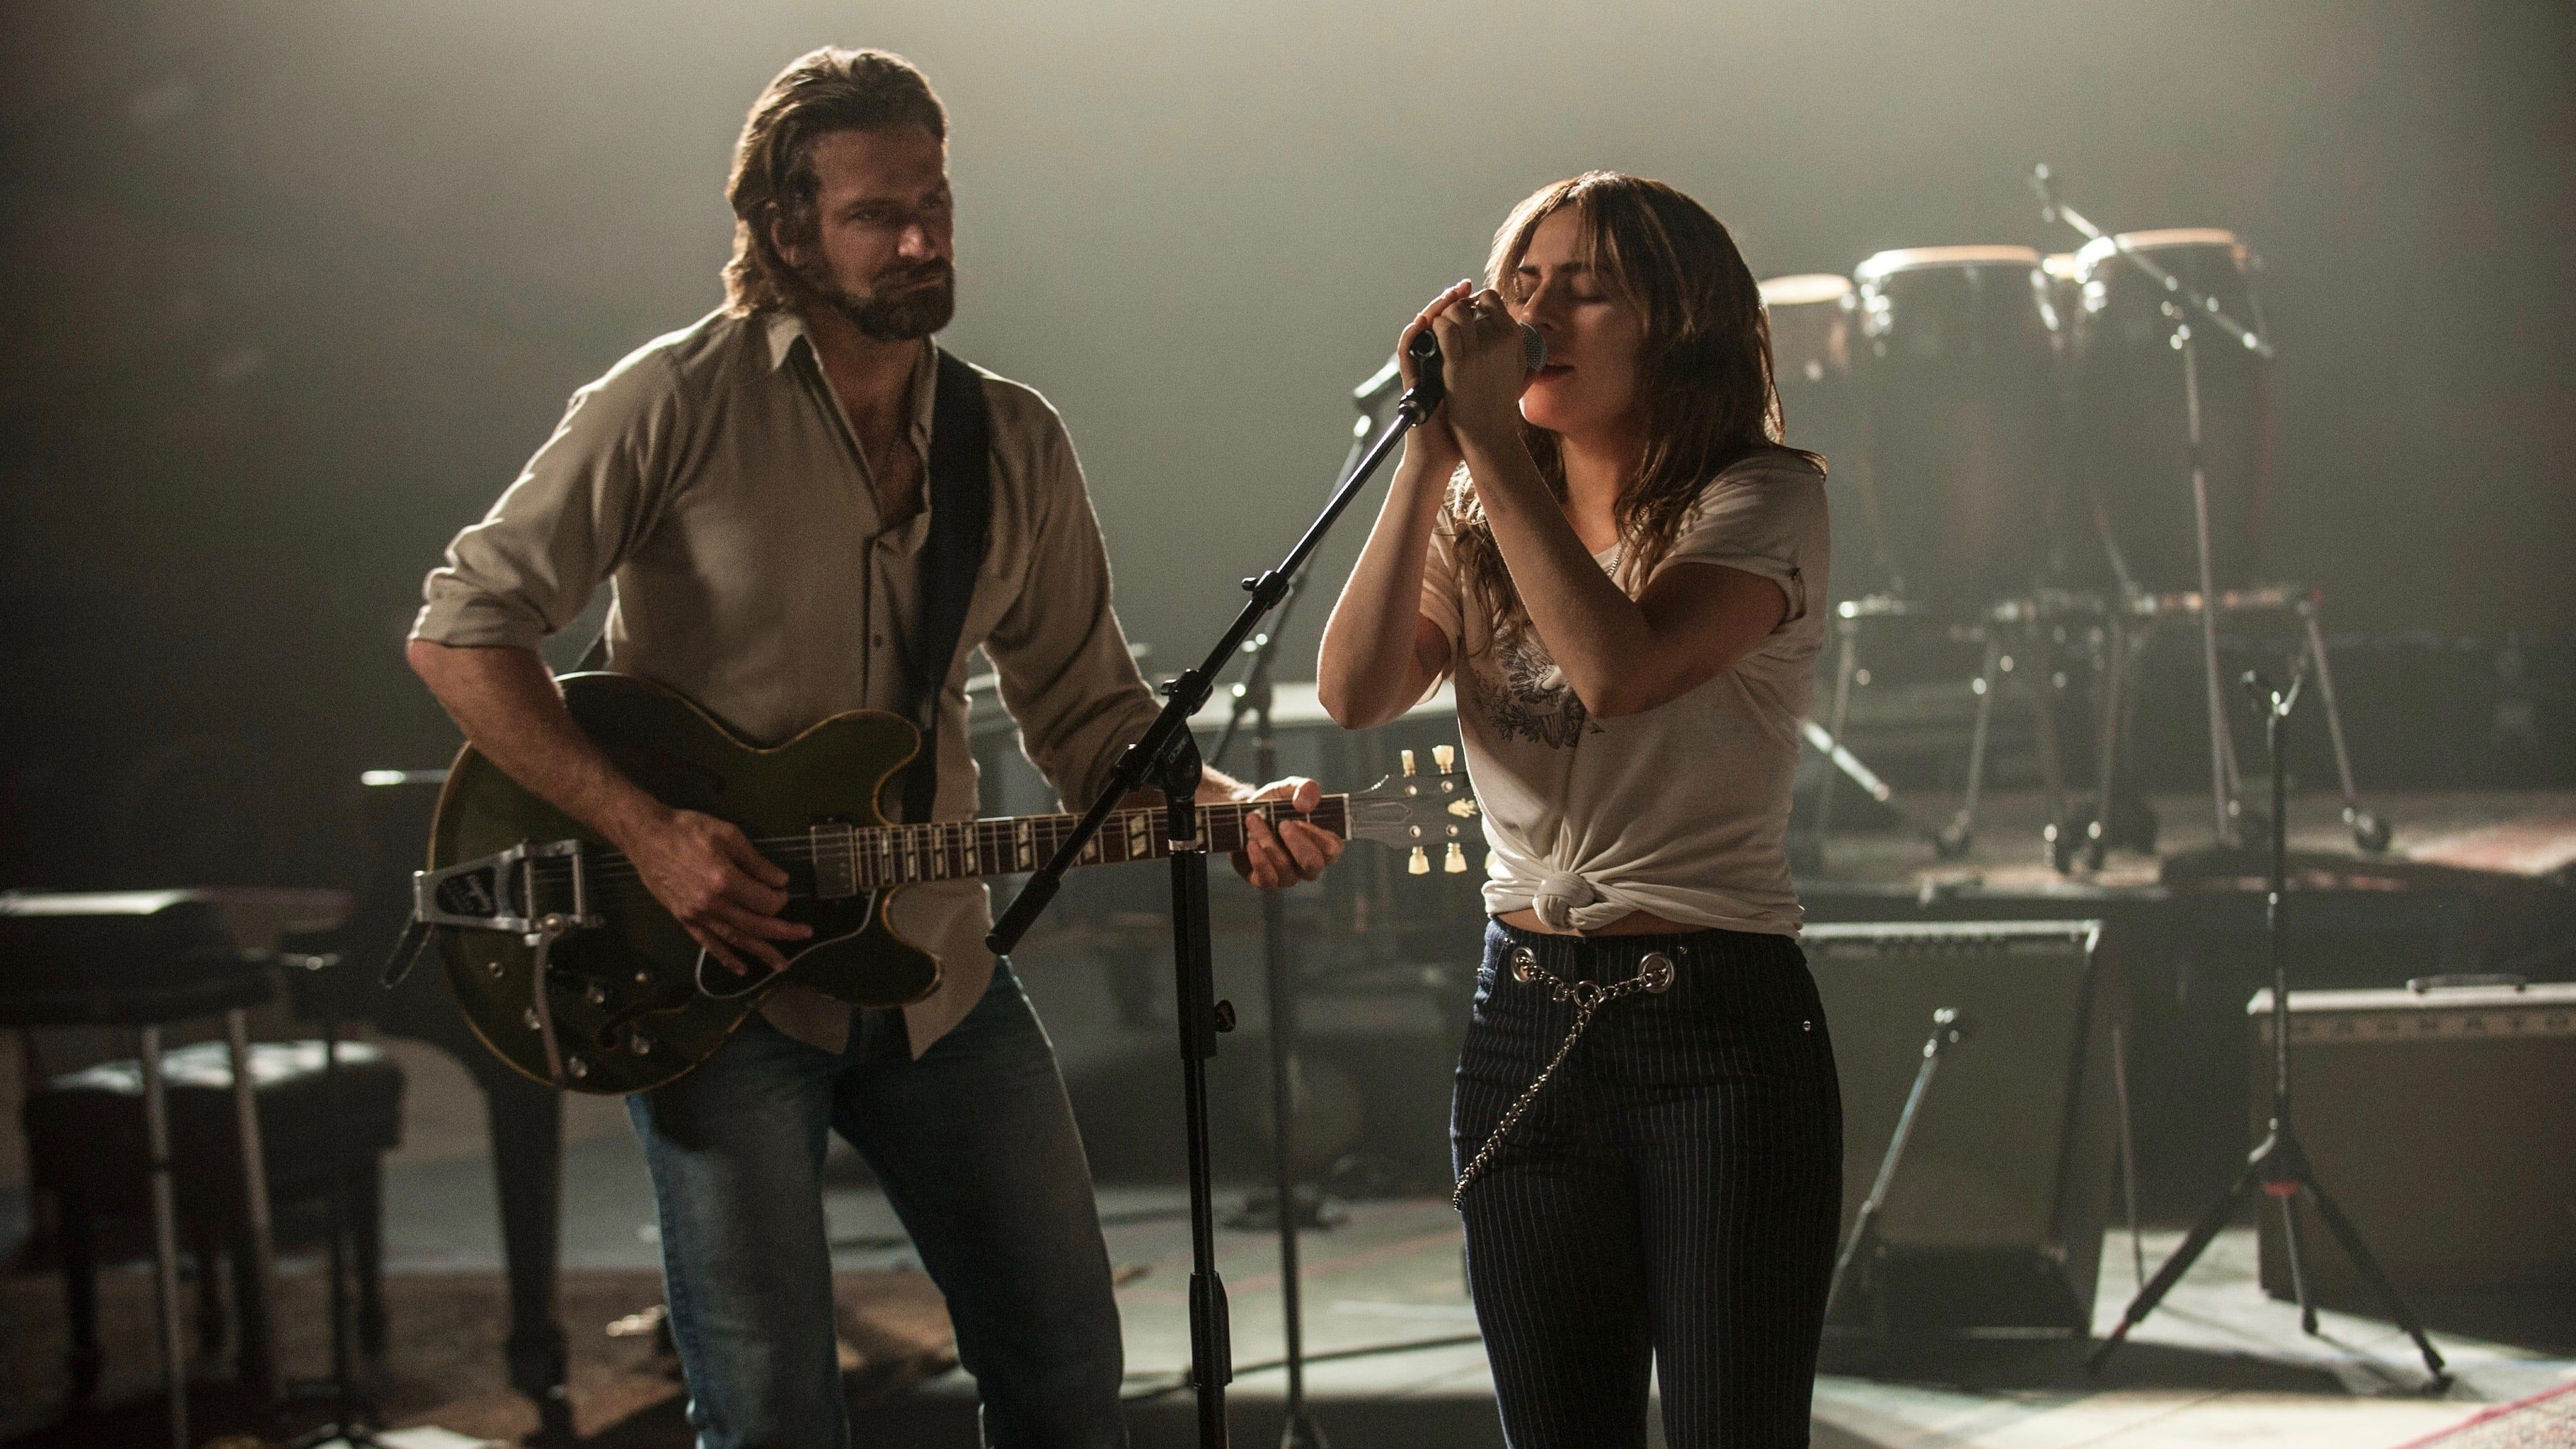 Watch A Star Is Born 2018 Full Movie Online Free Seasoned Musician Jackson Maine Discovers And Falls In Love With Struggling Artist Ally She Has